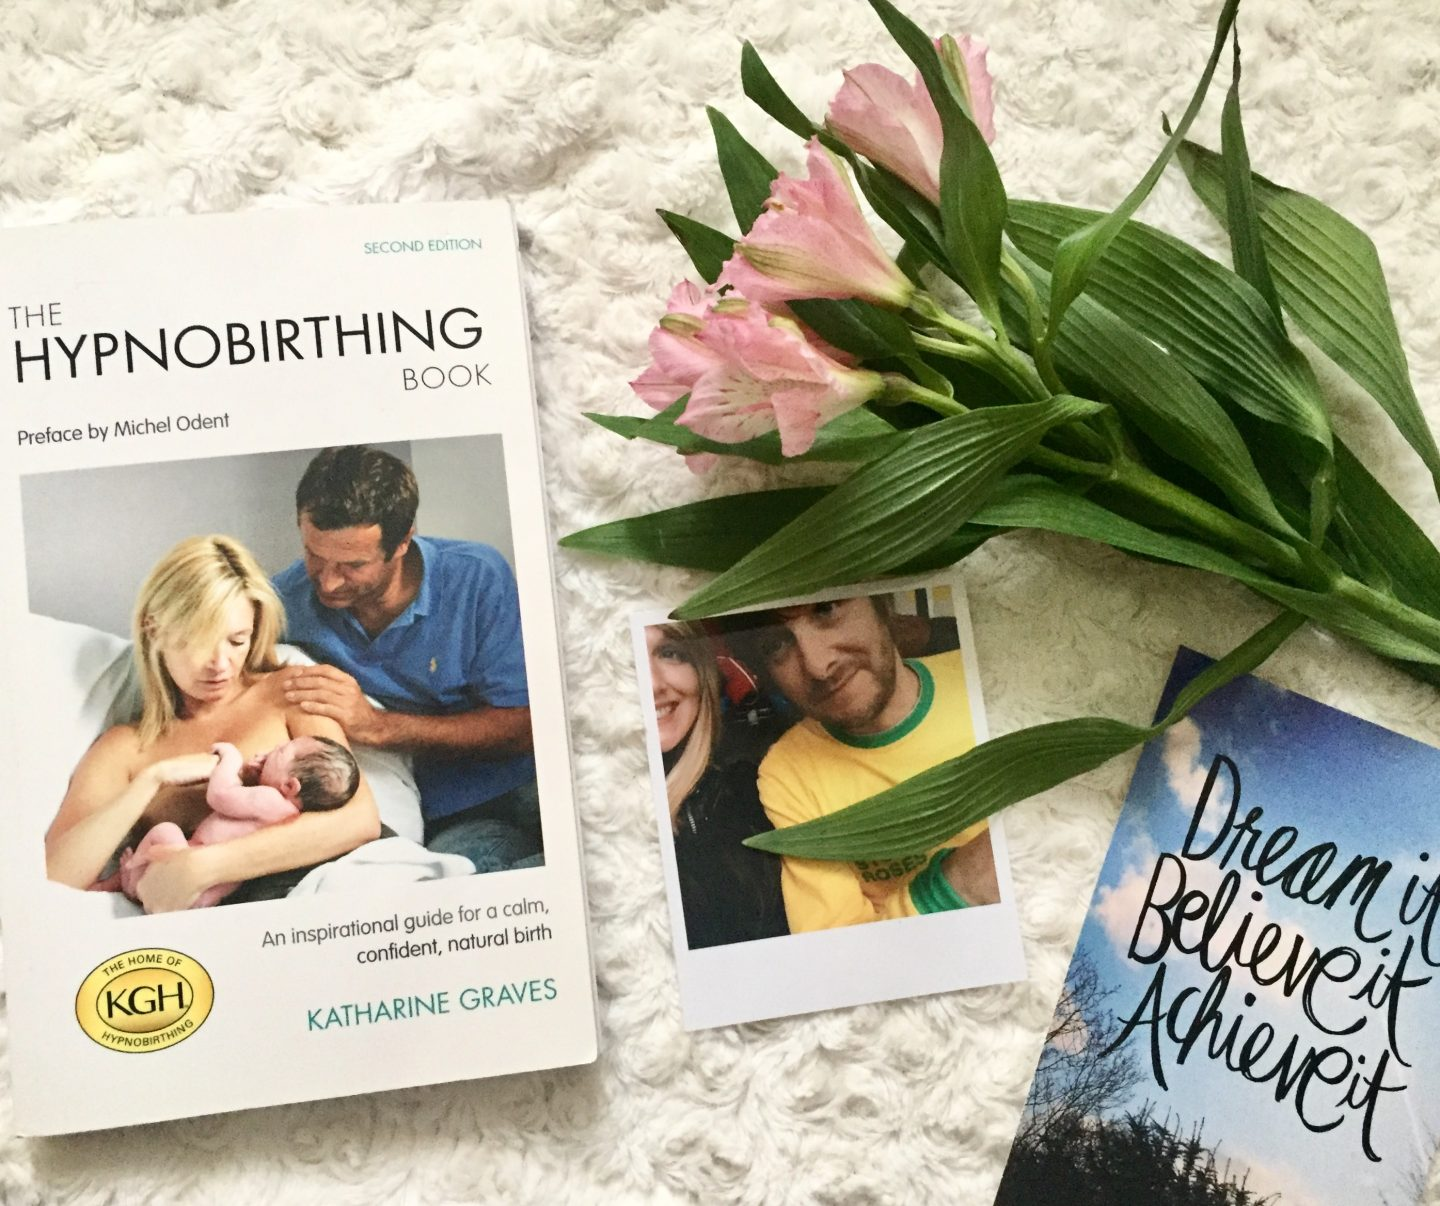 hypnobirthing book and postcard